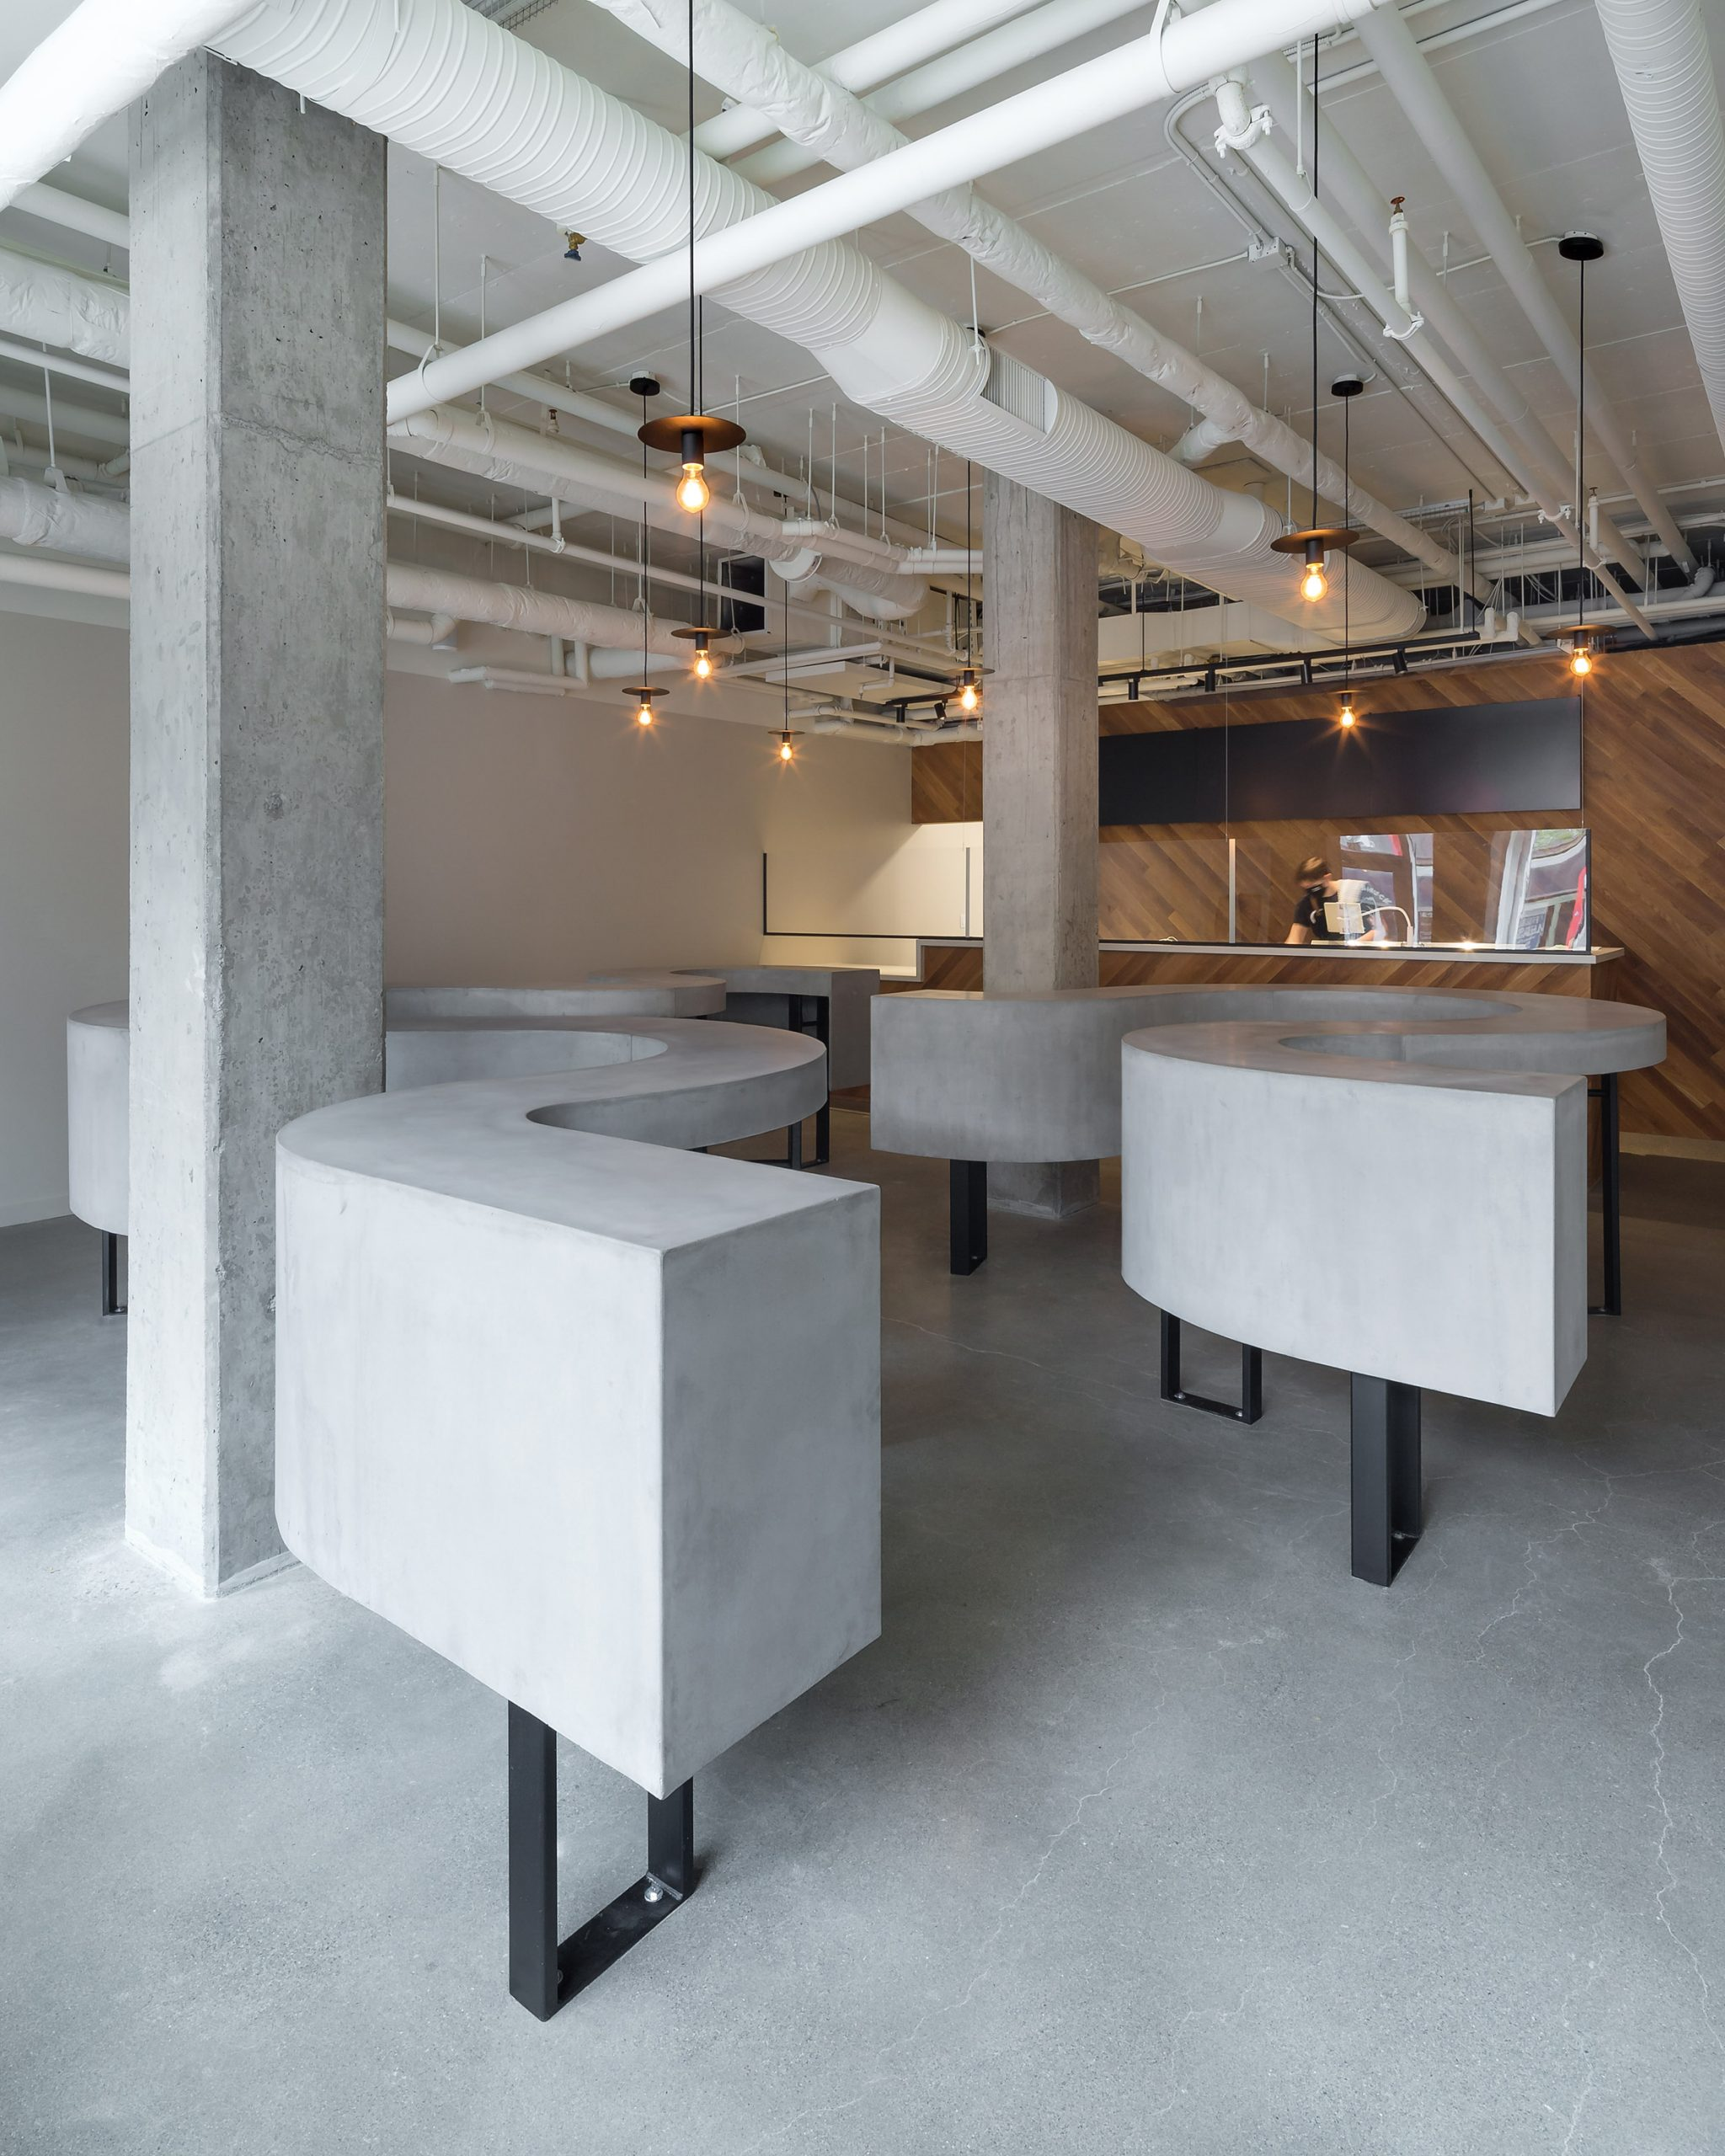 Grey concrete floors, tables and columns